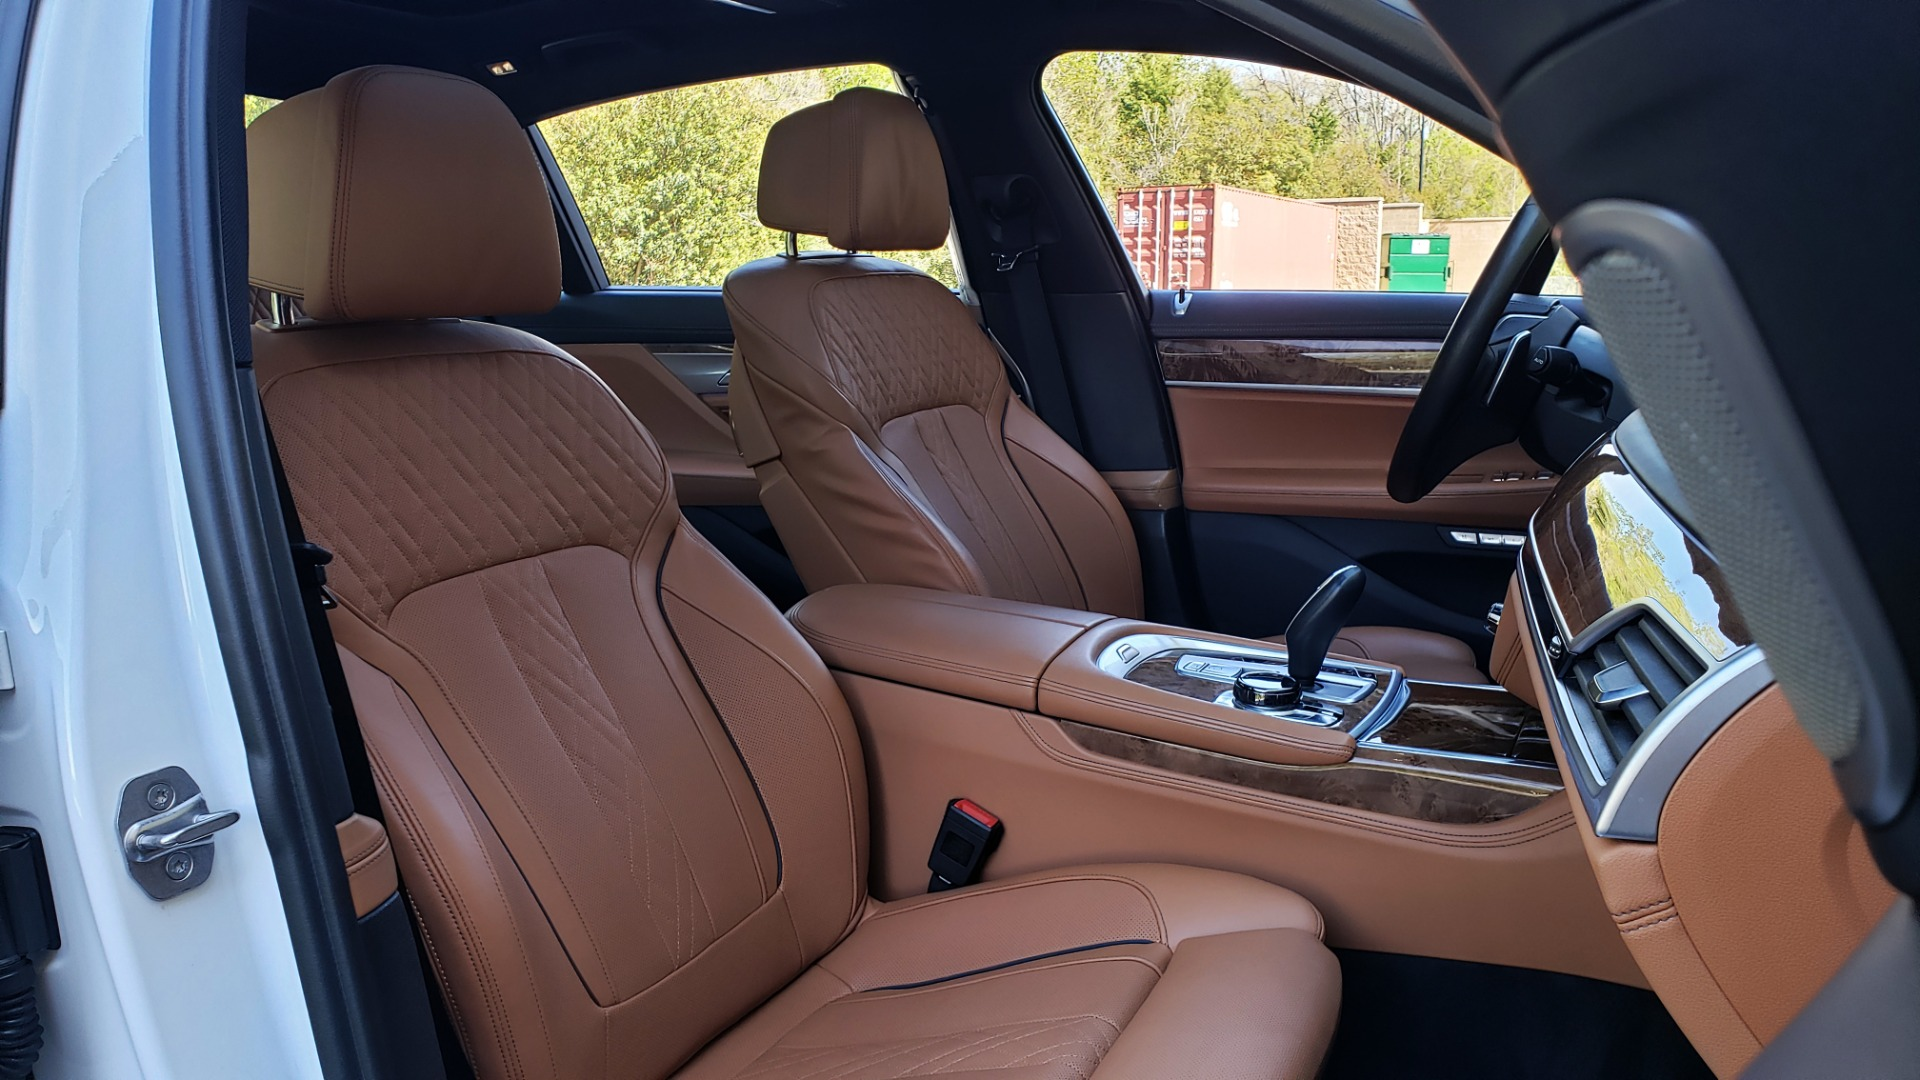 Used 2017 BMW 7 SERIES 750I XDRIVE / M-SPORT / EXEC PKG / DRVR ASST PLUS II / CLD WTHR for sale $48,495 at Formula Imports in Charlotte NC 28227 70